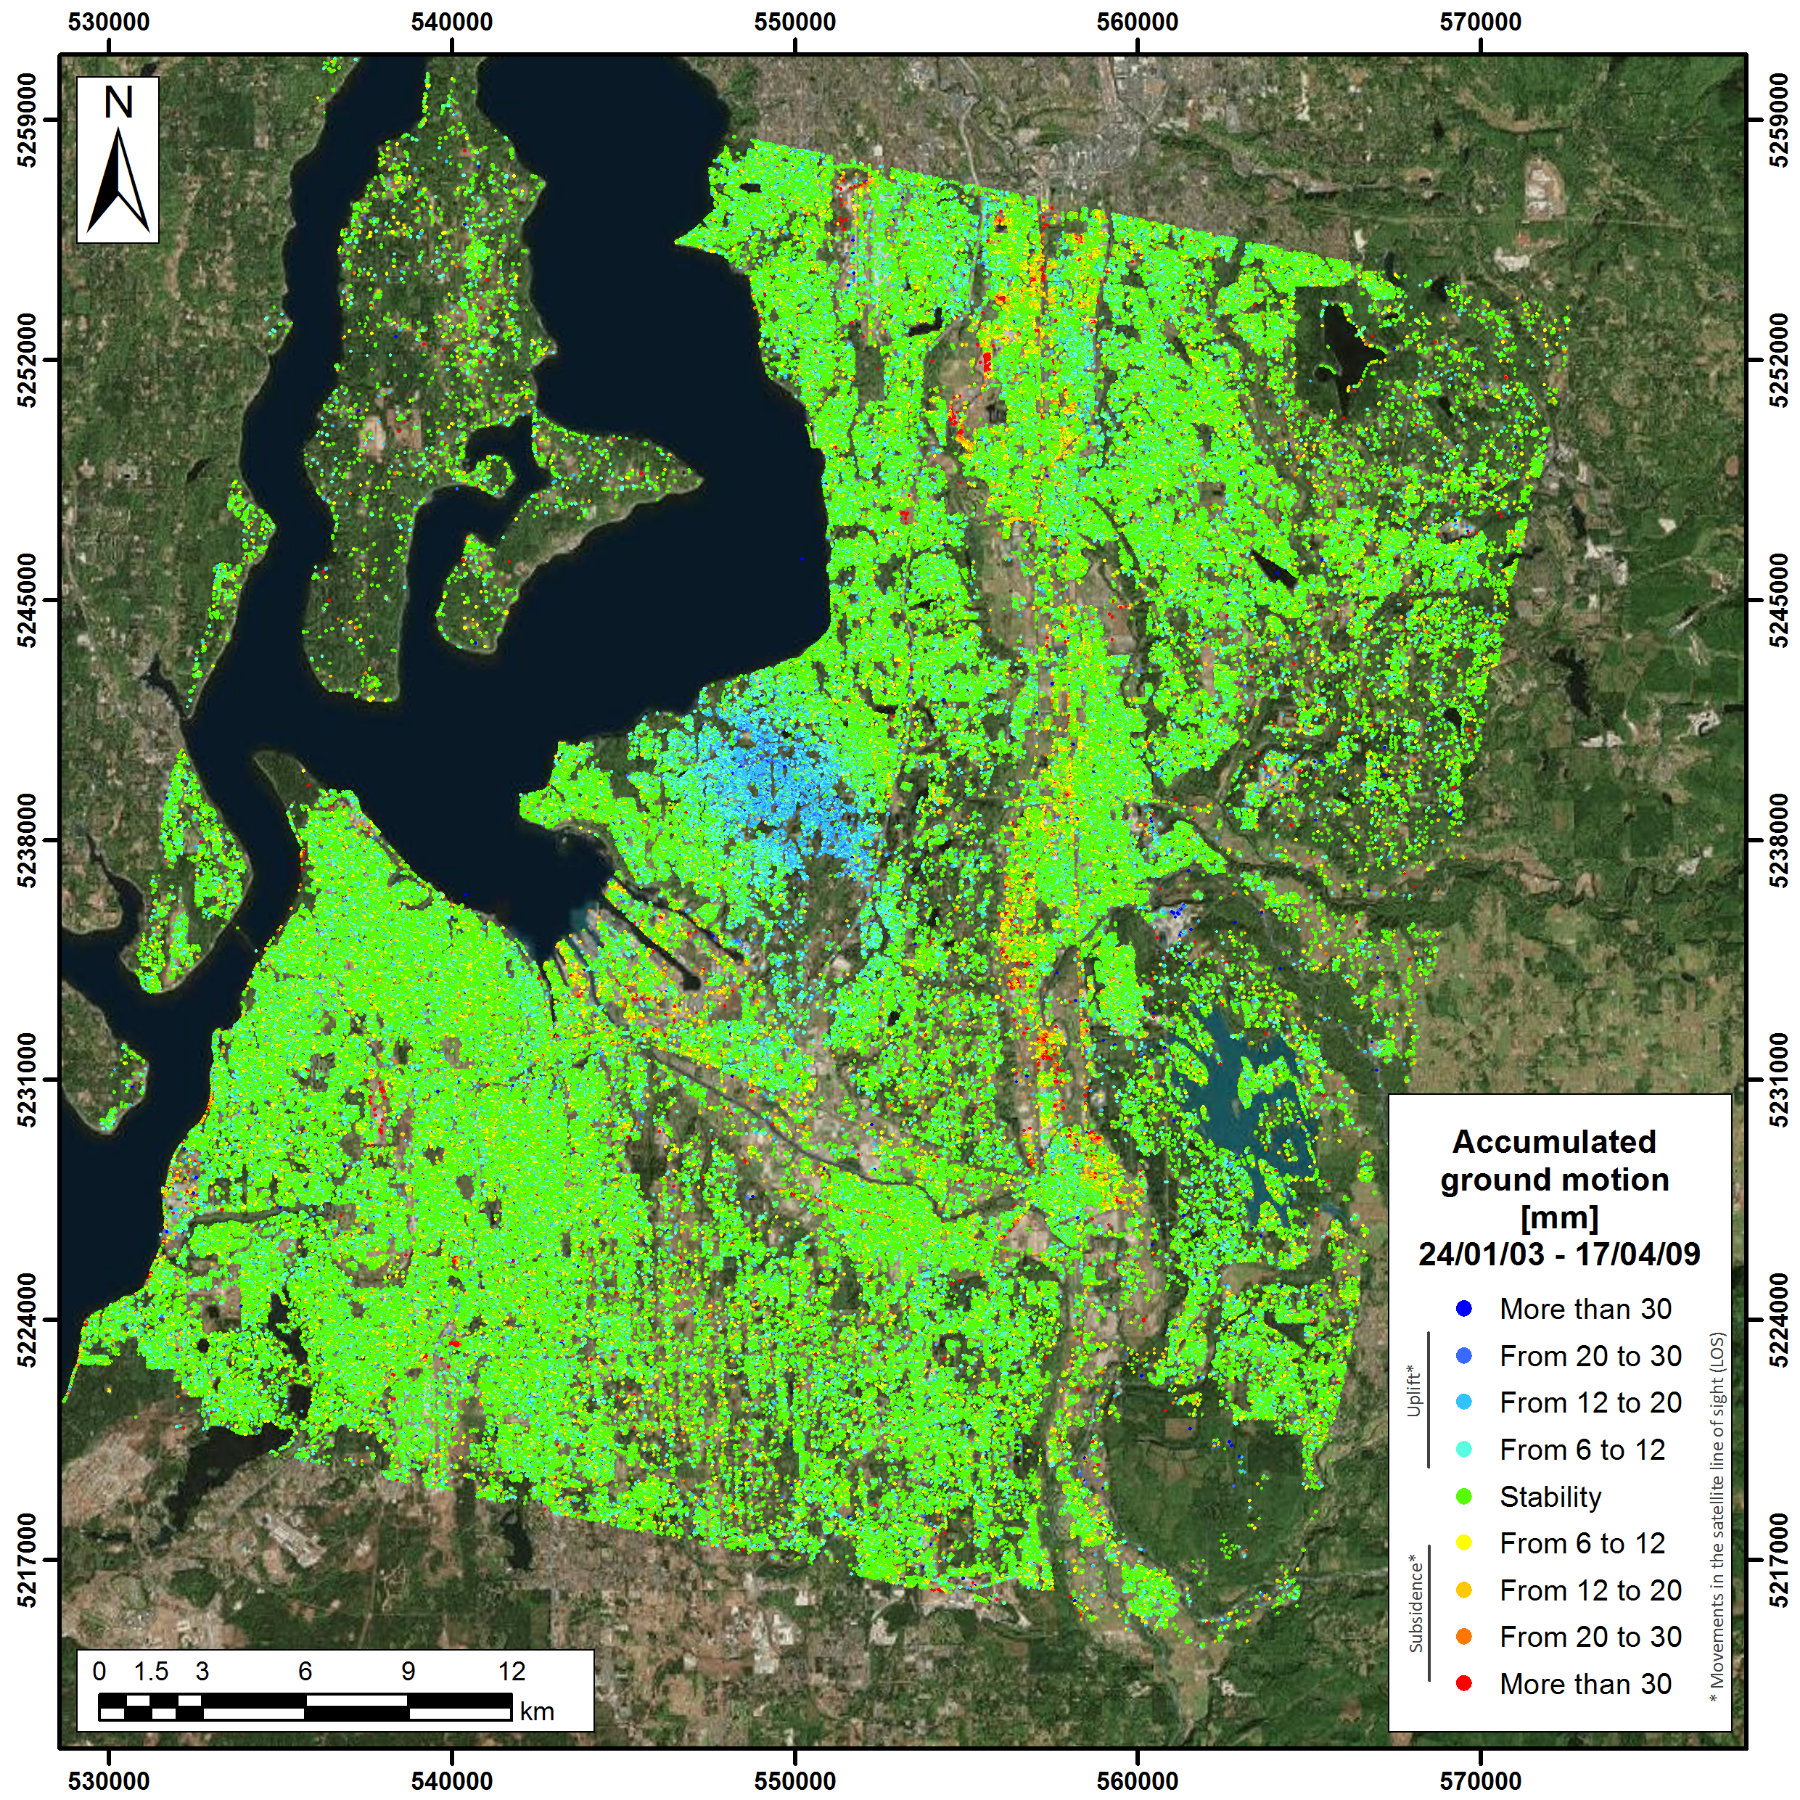 InSAR image showing accumulated ground motion in the greater Tacoma area. Image courtesy of TRE-Altamira.